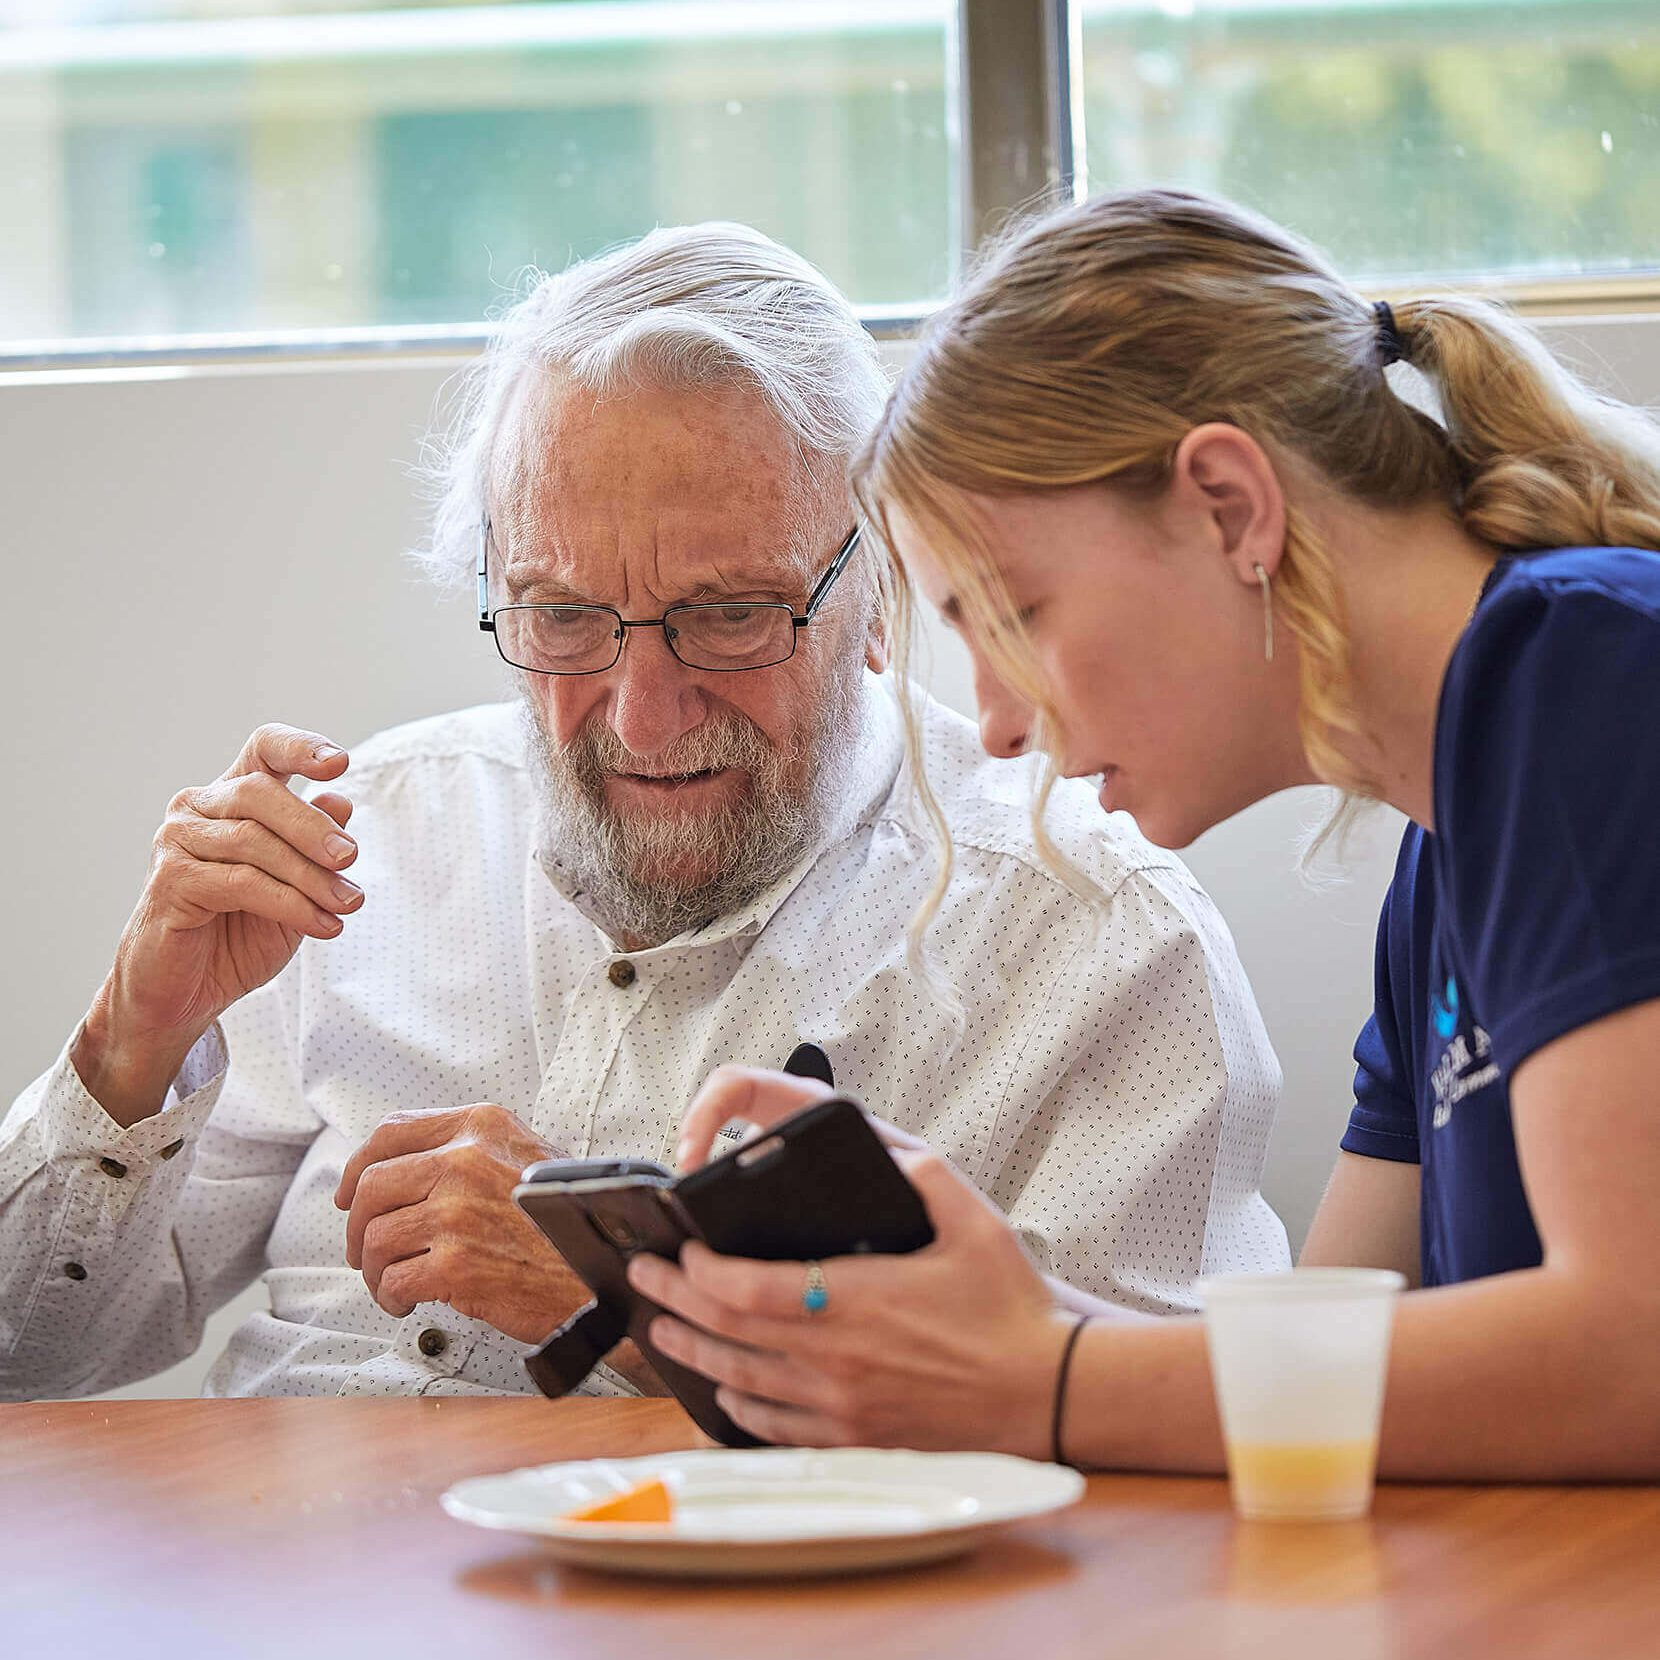 A young woman assisting an elderly gentleman to use a smartphone. They are sitting at a wooden table and an empty plate and small cup of orange juice is in front of them.